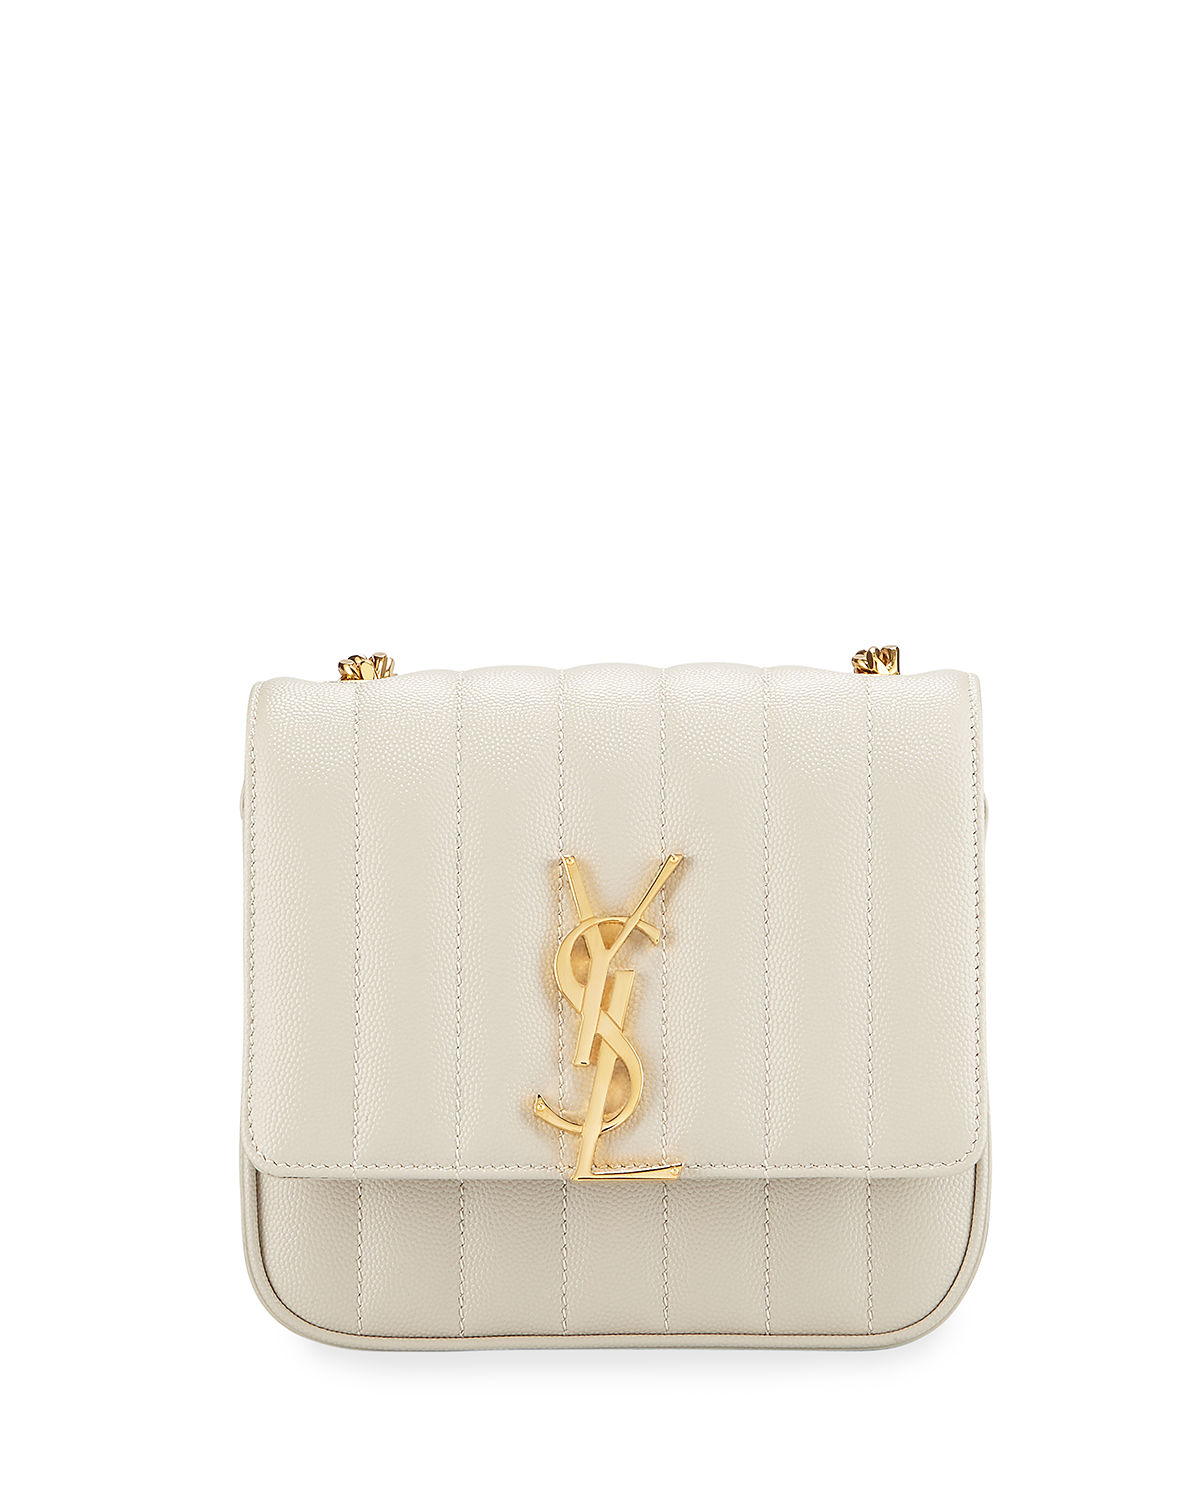 Saint Laurent Vicky Small Ysl Monogram Quilted Crossbody